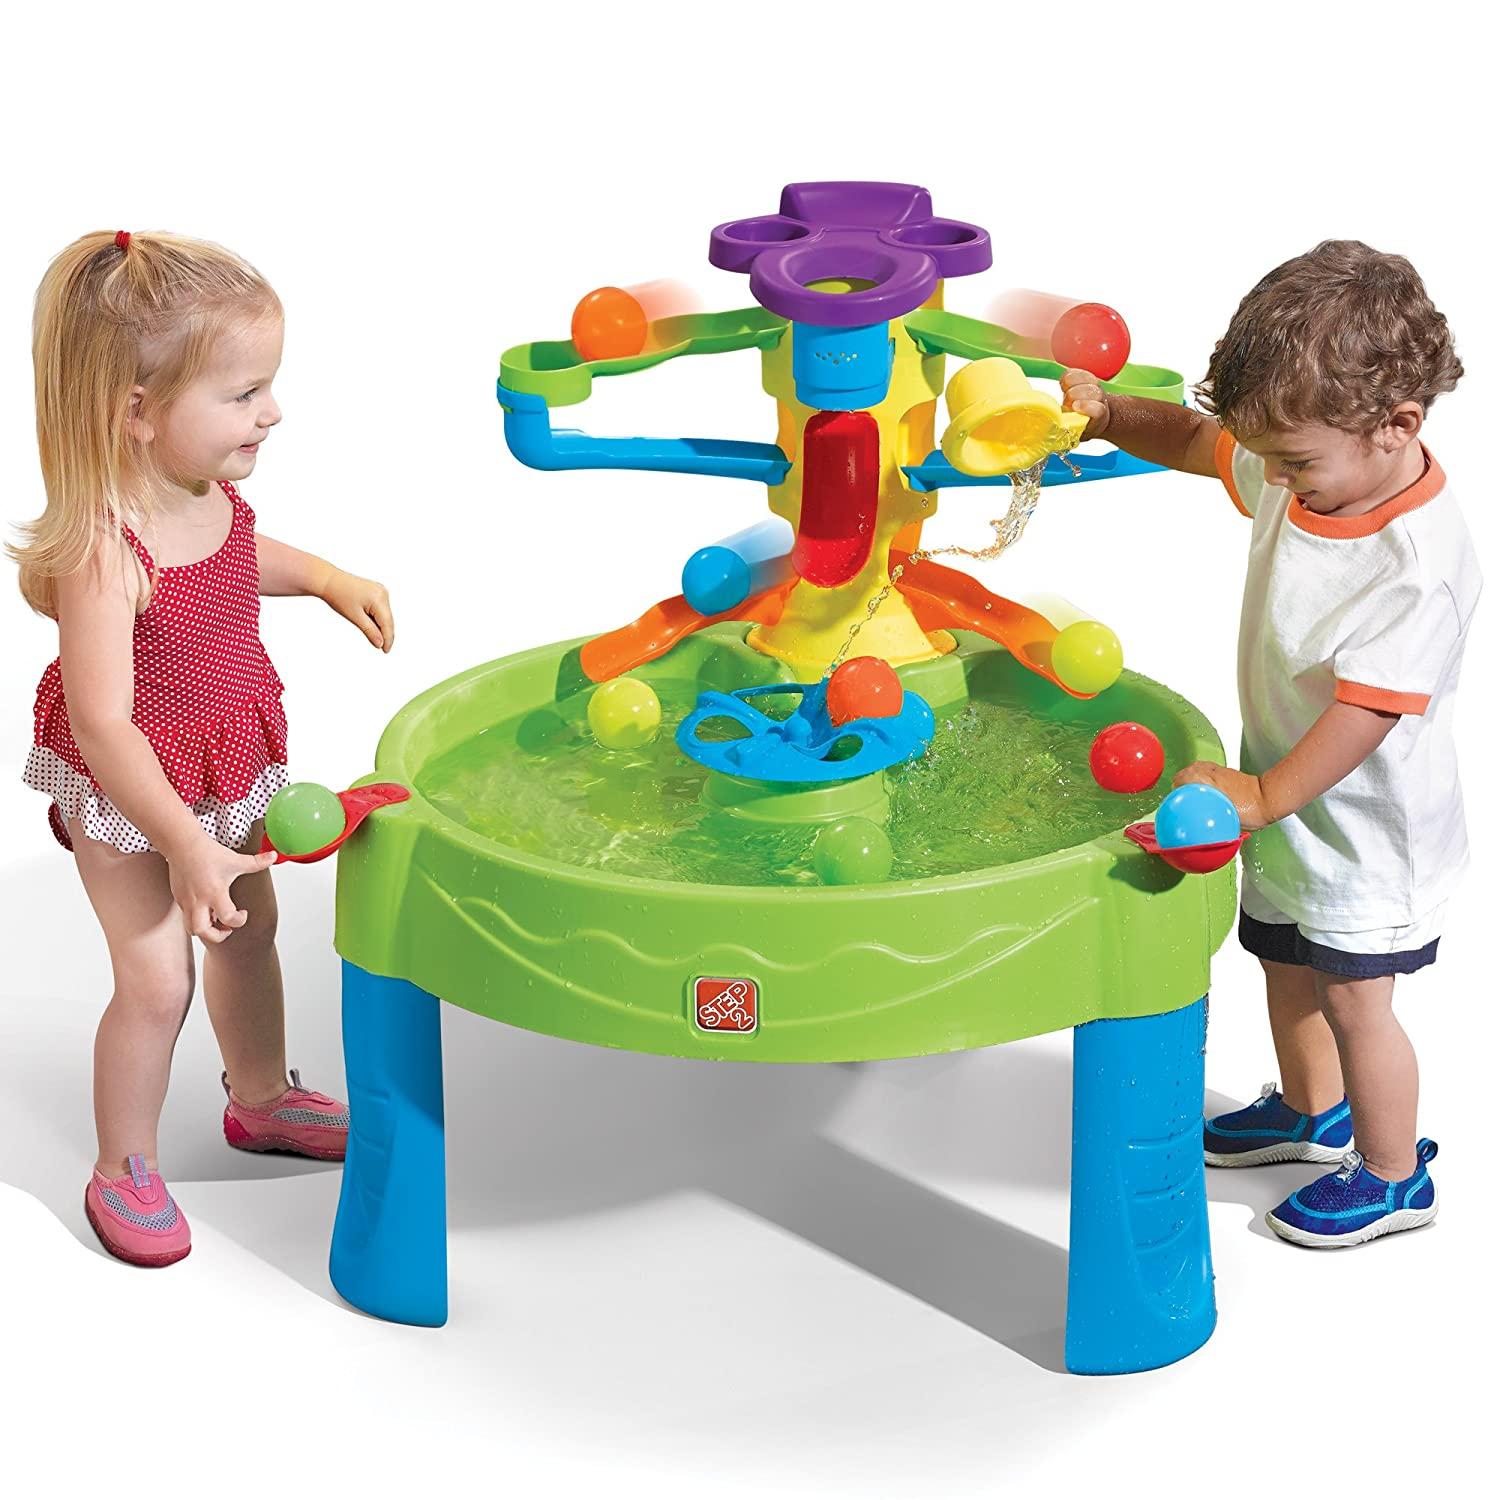 Amazon Step2 Busy Ball Play Table Toys & Games